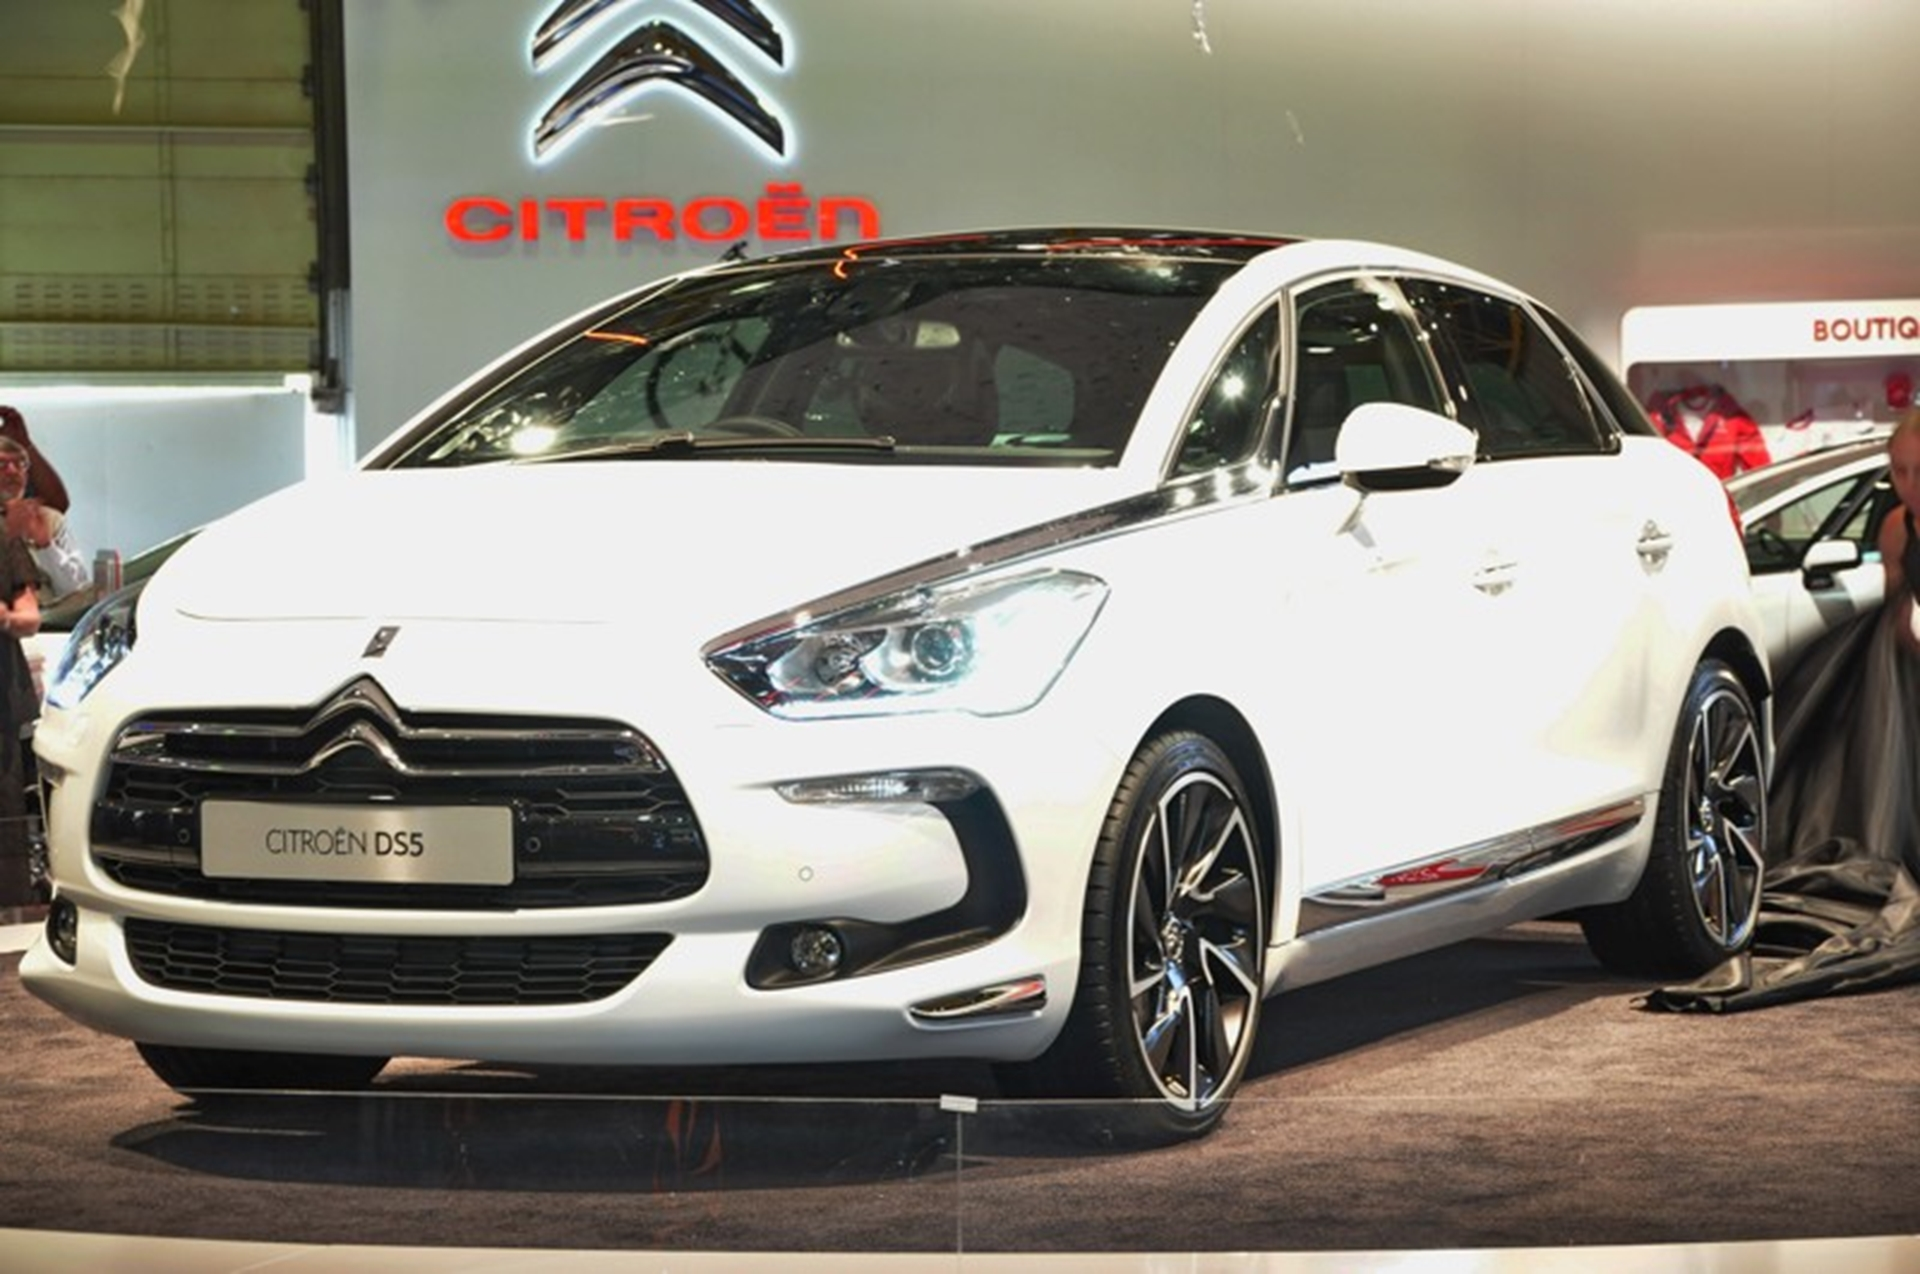 Citroen Johannesburg 2011 International Motor Show